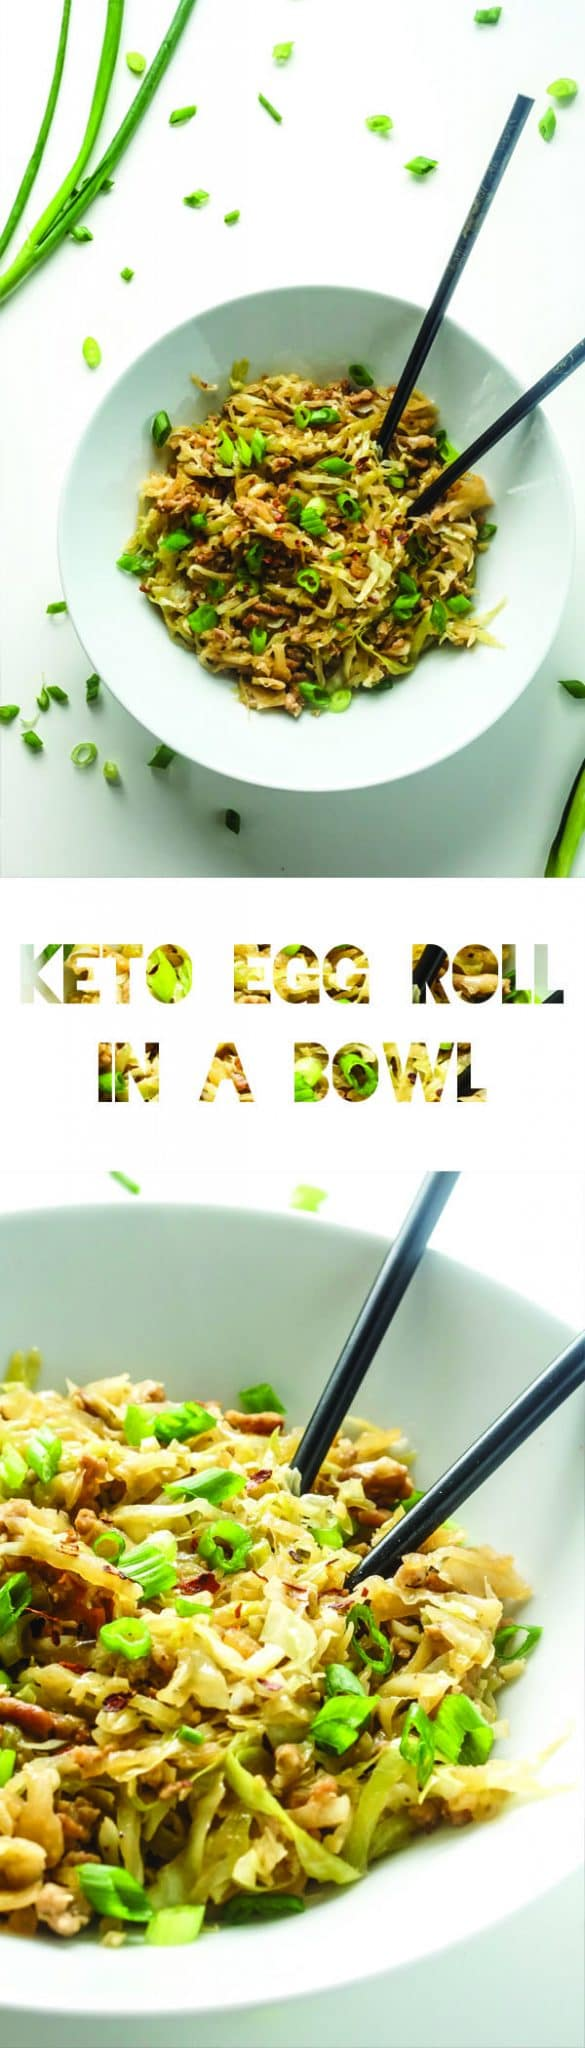 Keto Egg Roll in a Bowl Recipe   Cabbage   Low Carb Vegetable   Atkins   LCHF